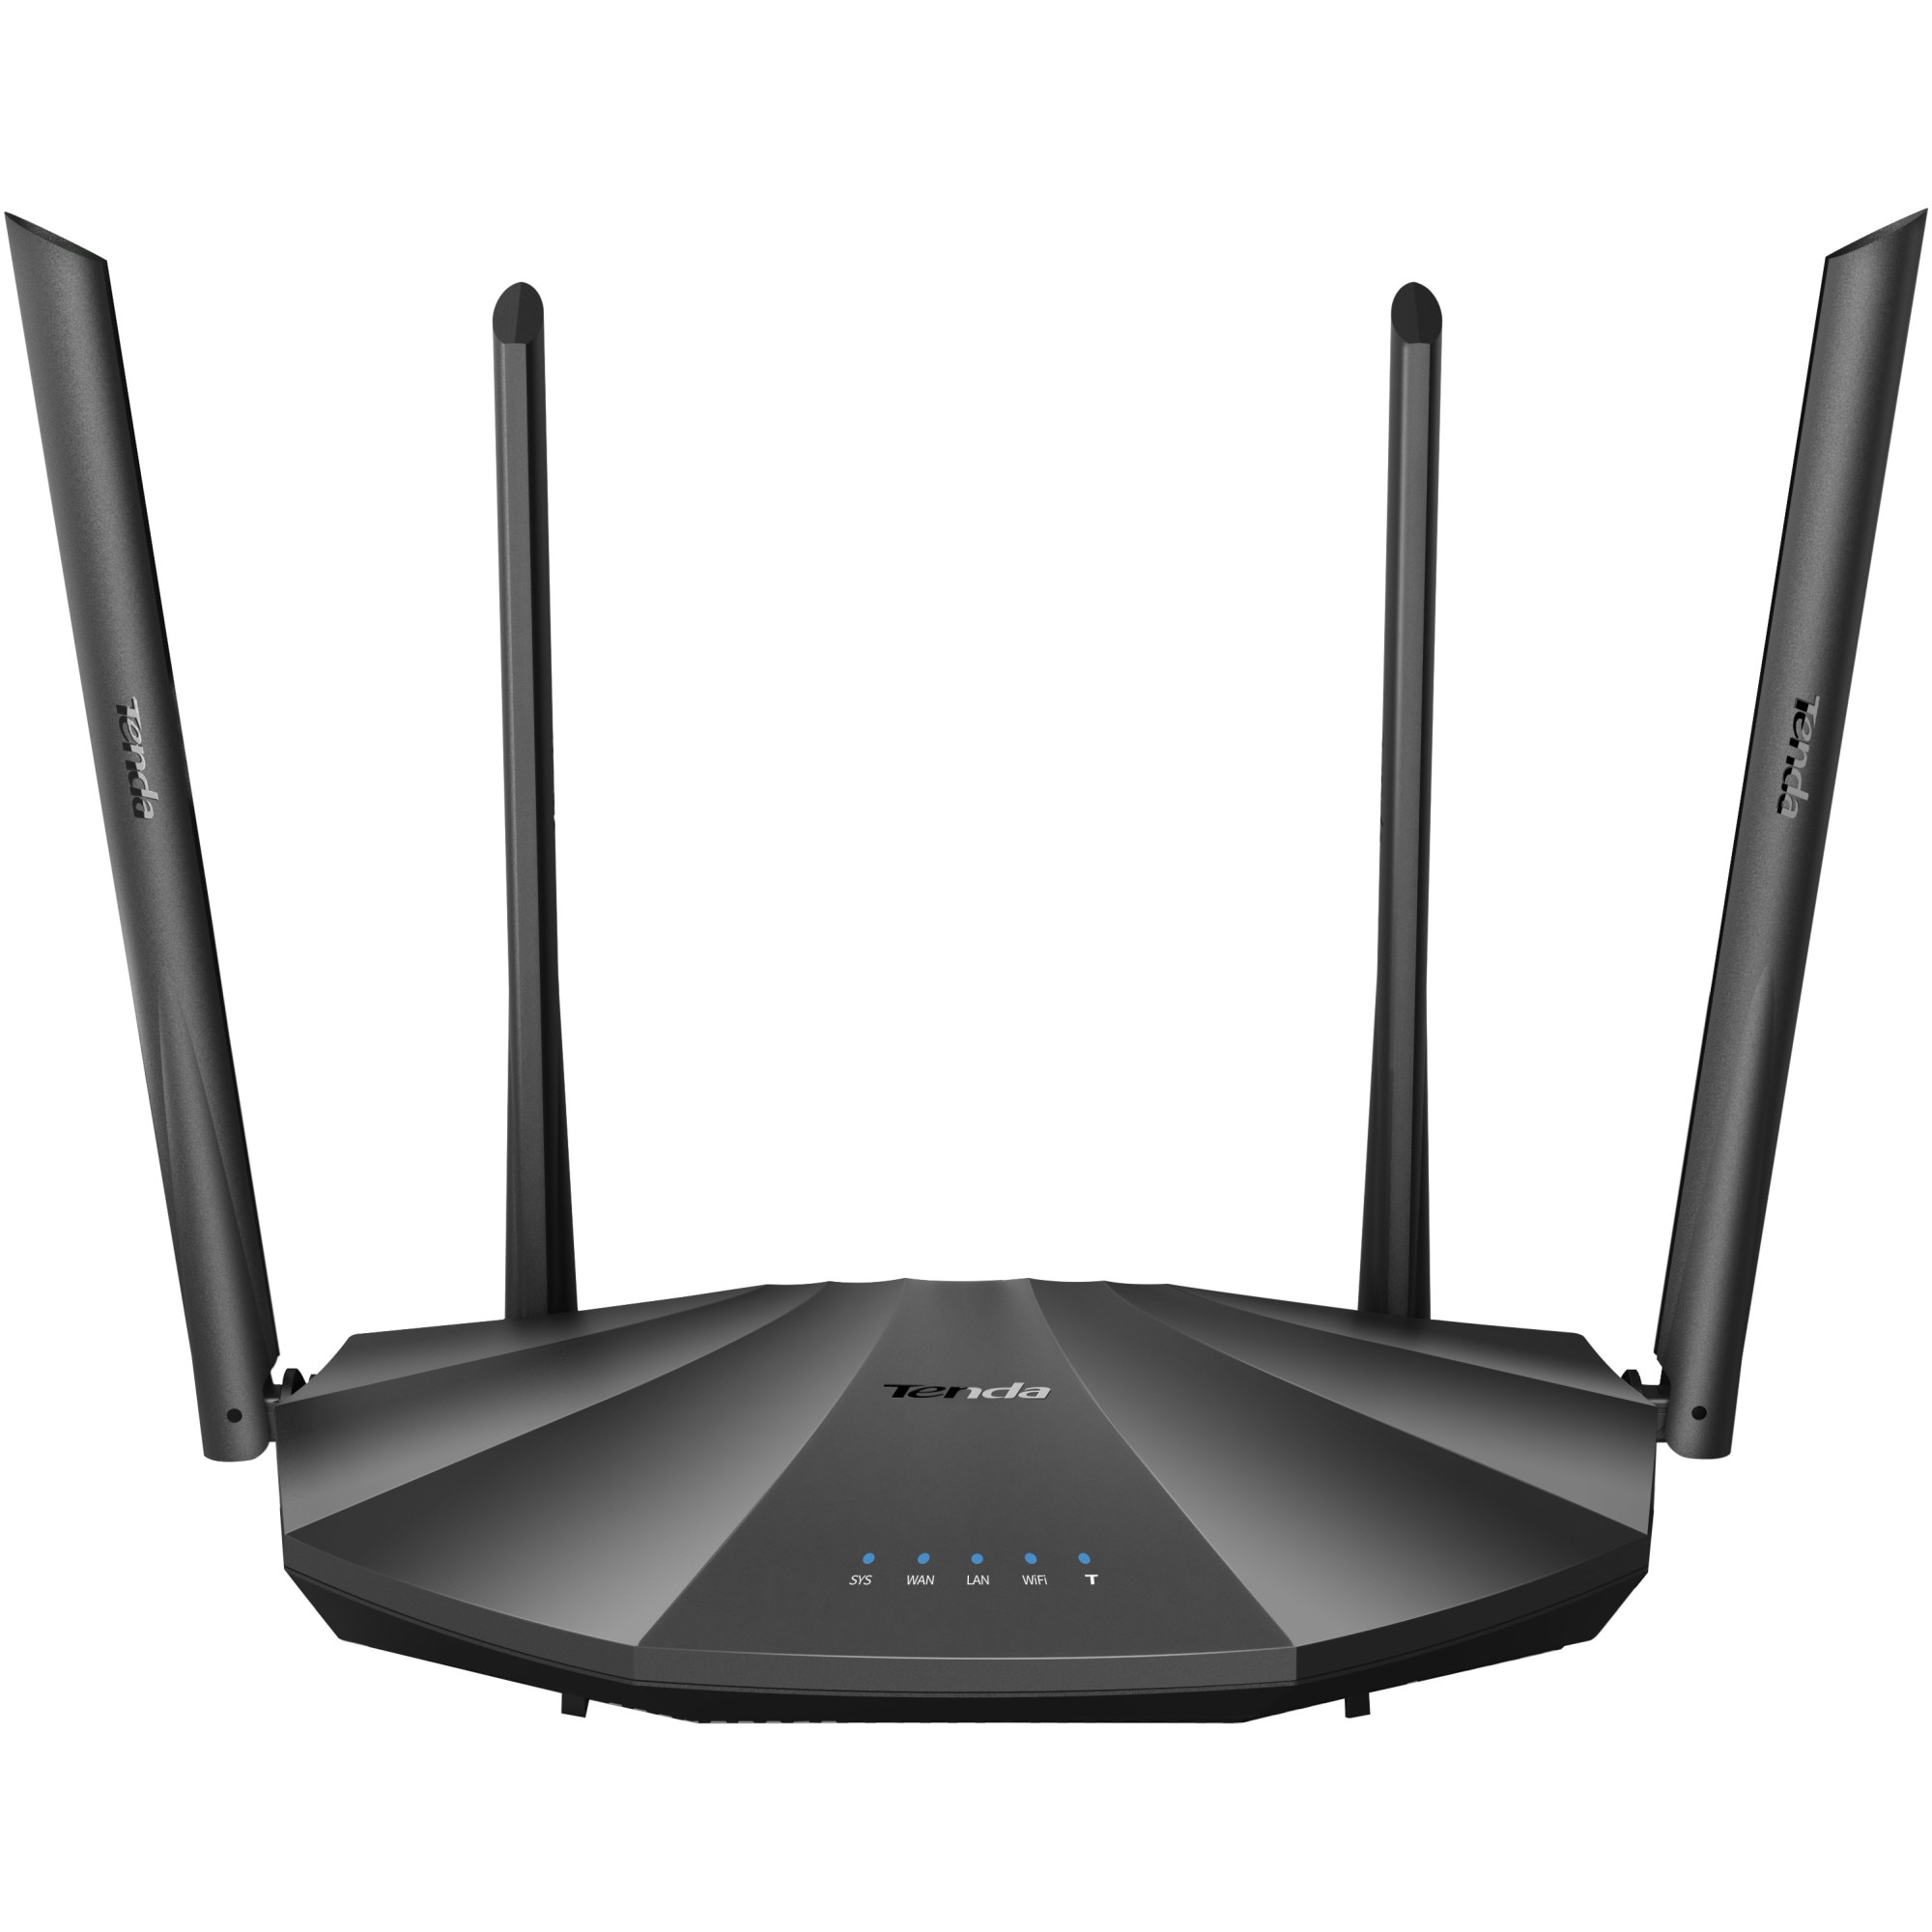 Fotografie Router wireless Tenda AC19, AC2100, Gigabit,USB, dual-band, 4 antene, firewall, MU-MIMO, Wave 2, dual core, IPv6